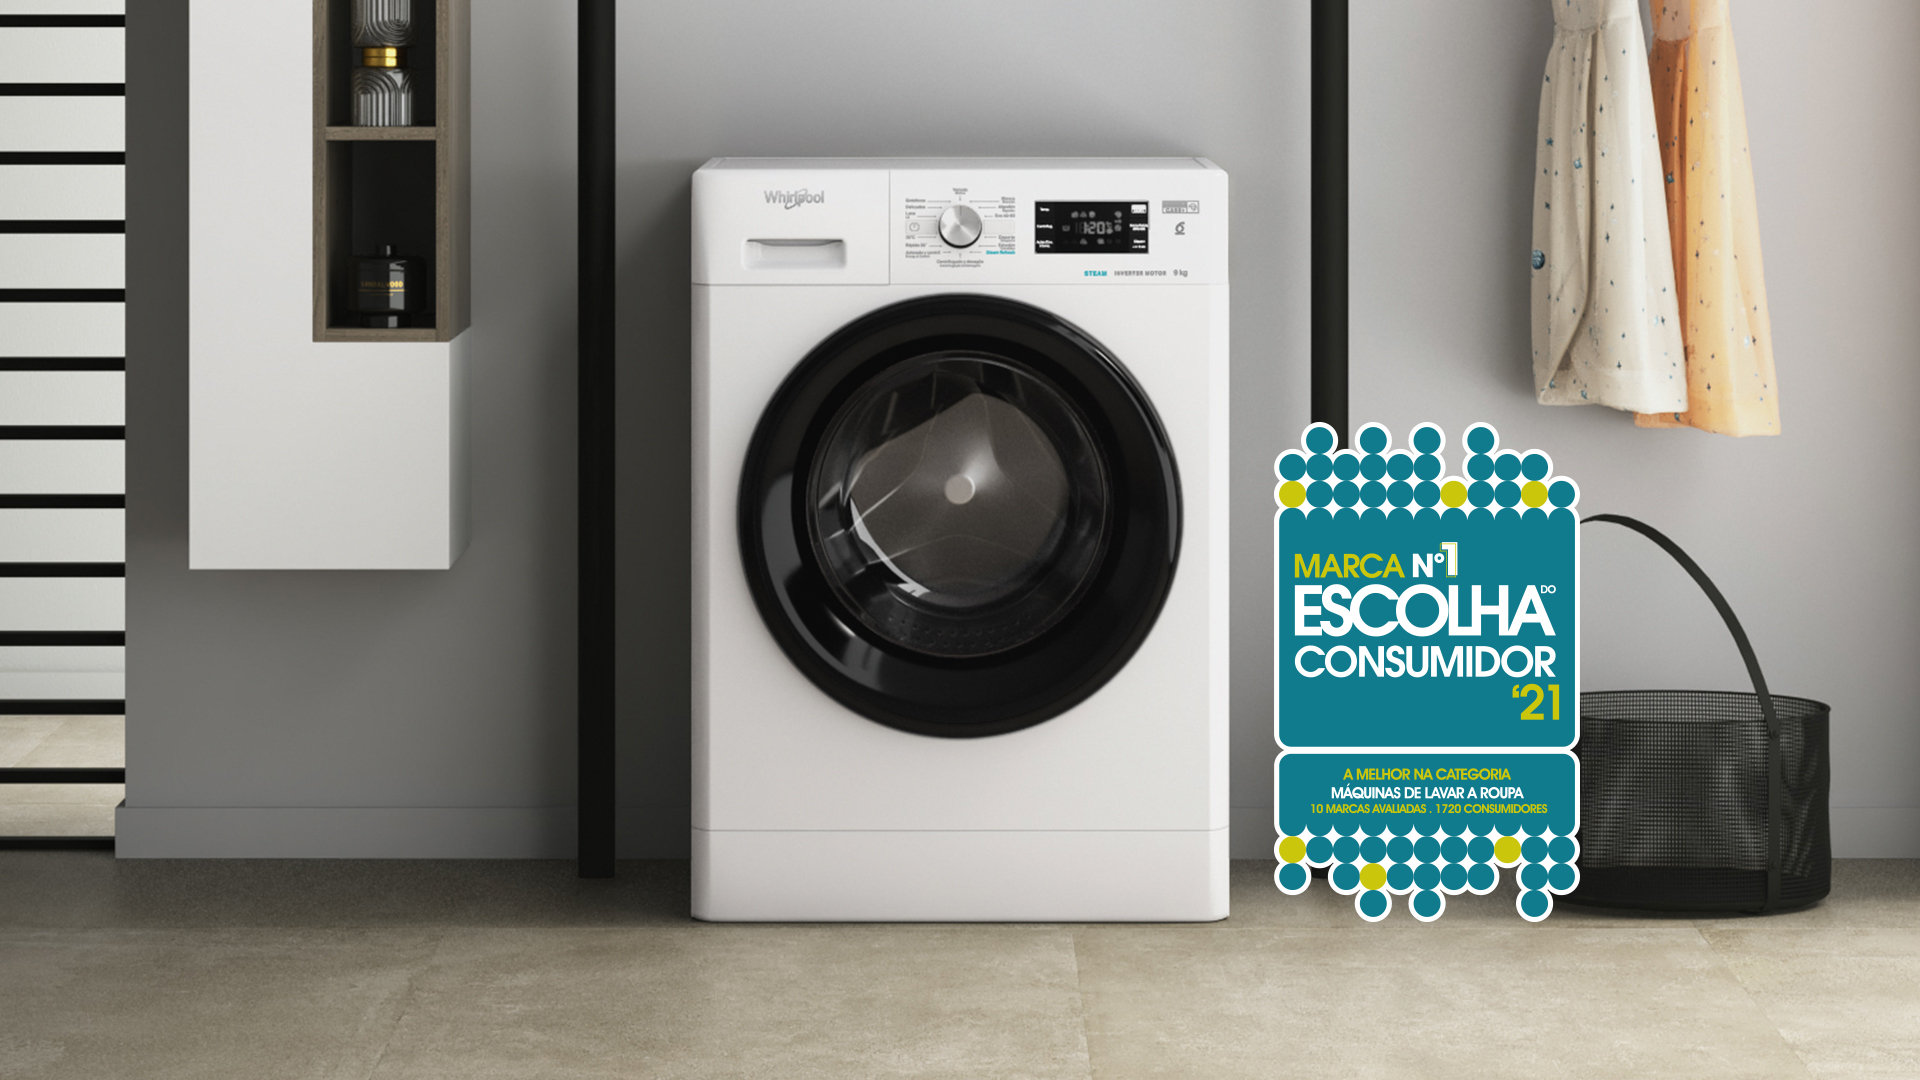 DG202016722_MLRoupa Whirlpool_Escolha do Consumidor 2021_Frontal